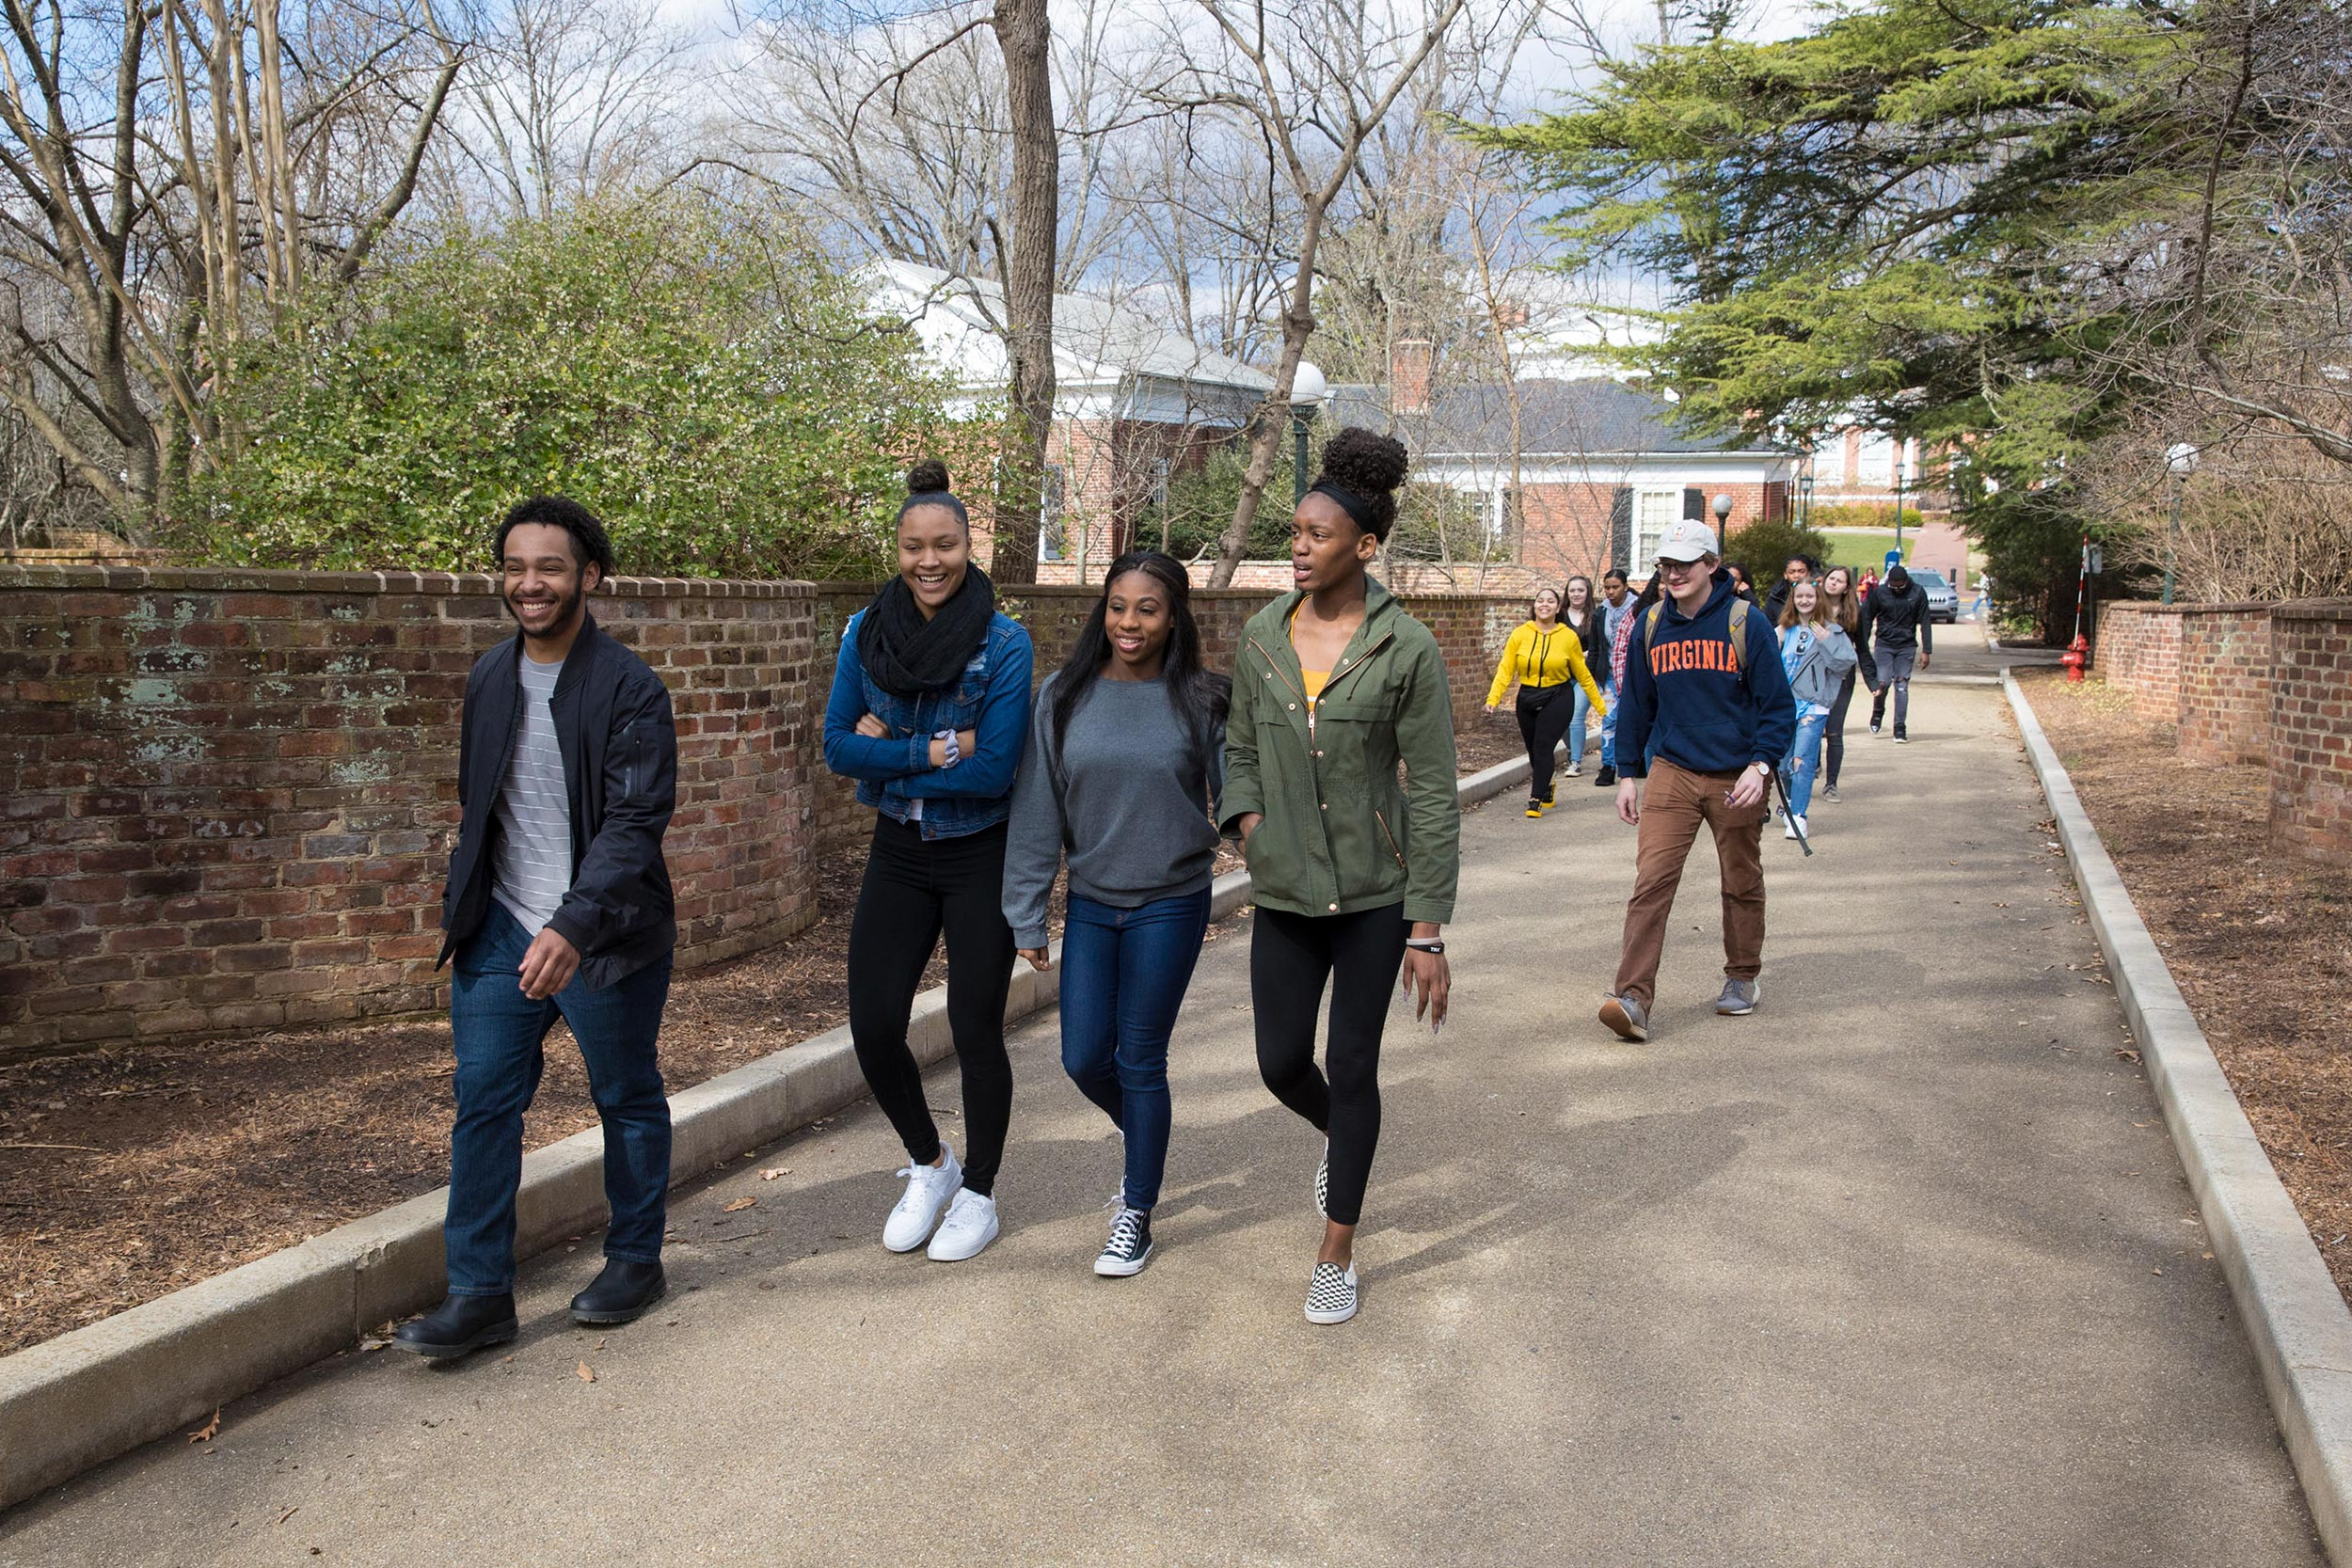 UVA and Monticello High School students head to the Lawn for a tailored tour for first-gen students.